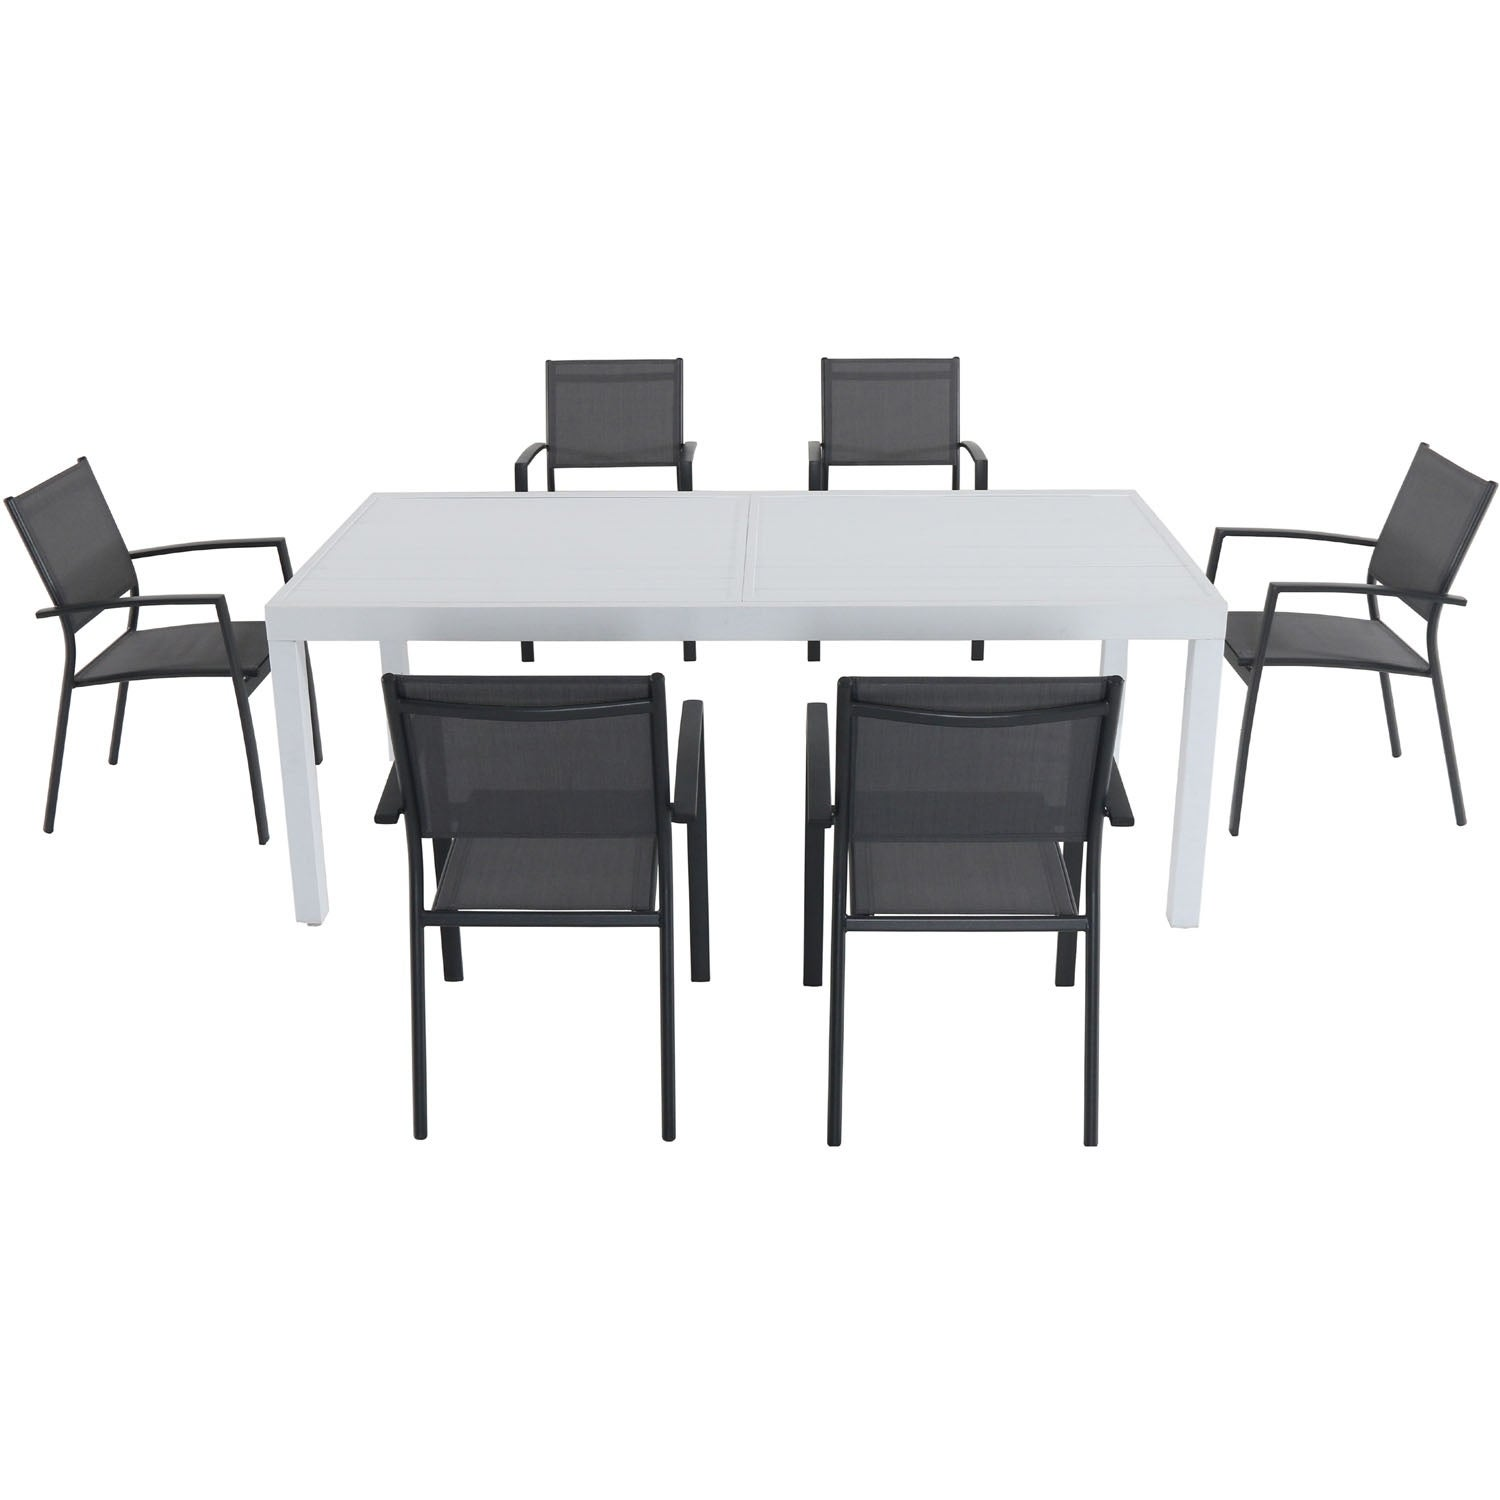 Cambridge Palermo 7-Piece Outdoor Dining Set with 6 Sling Chairs in Gray and a 40 x 118 Expandable Dining Table